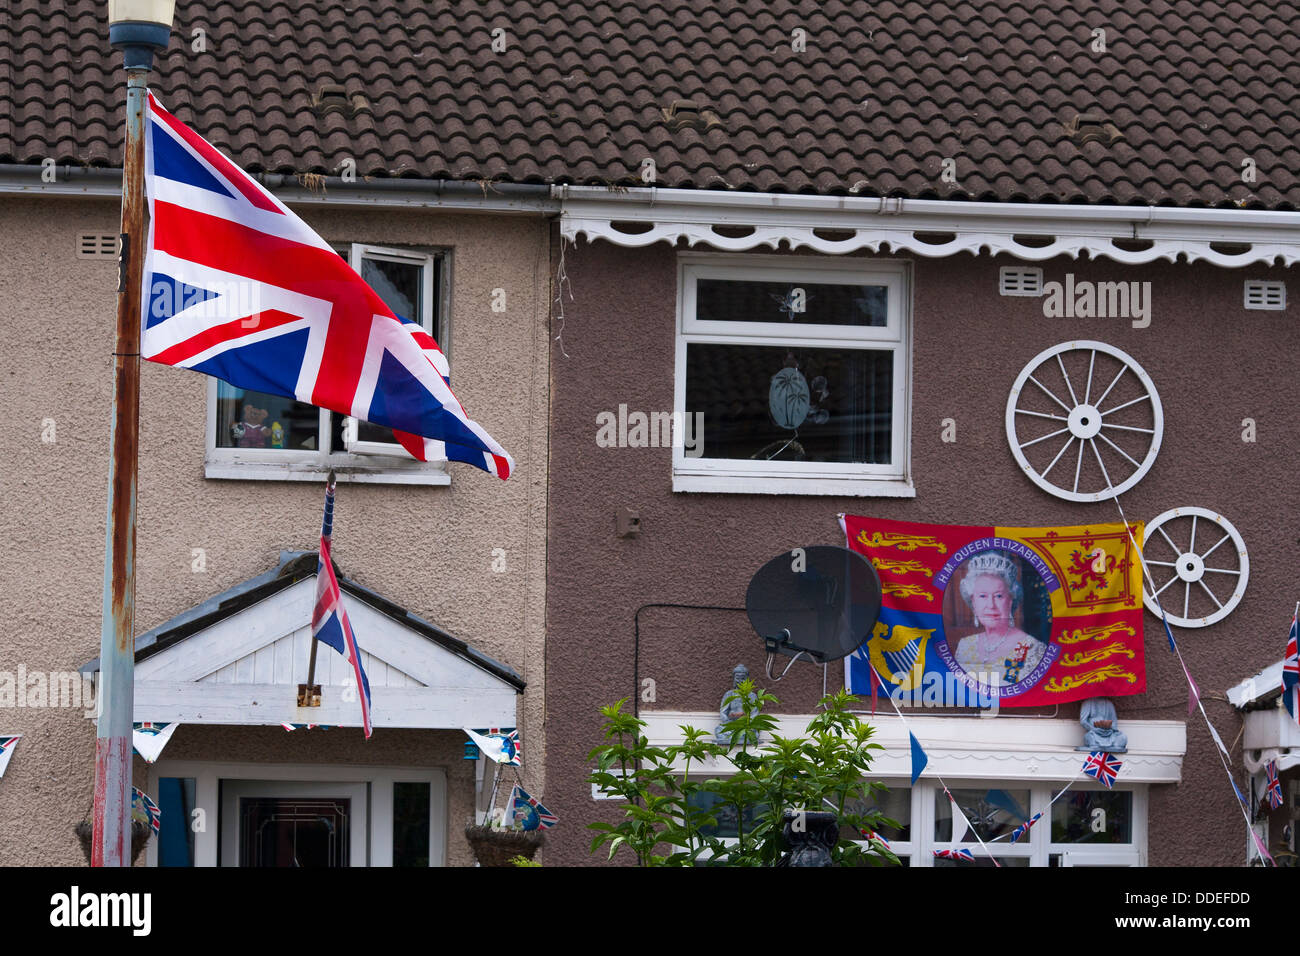 A Union Jack flag flies from a house on a housing estate in Protestant west Belfast in Northern Ireland - Stock Image